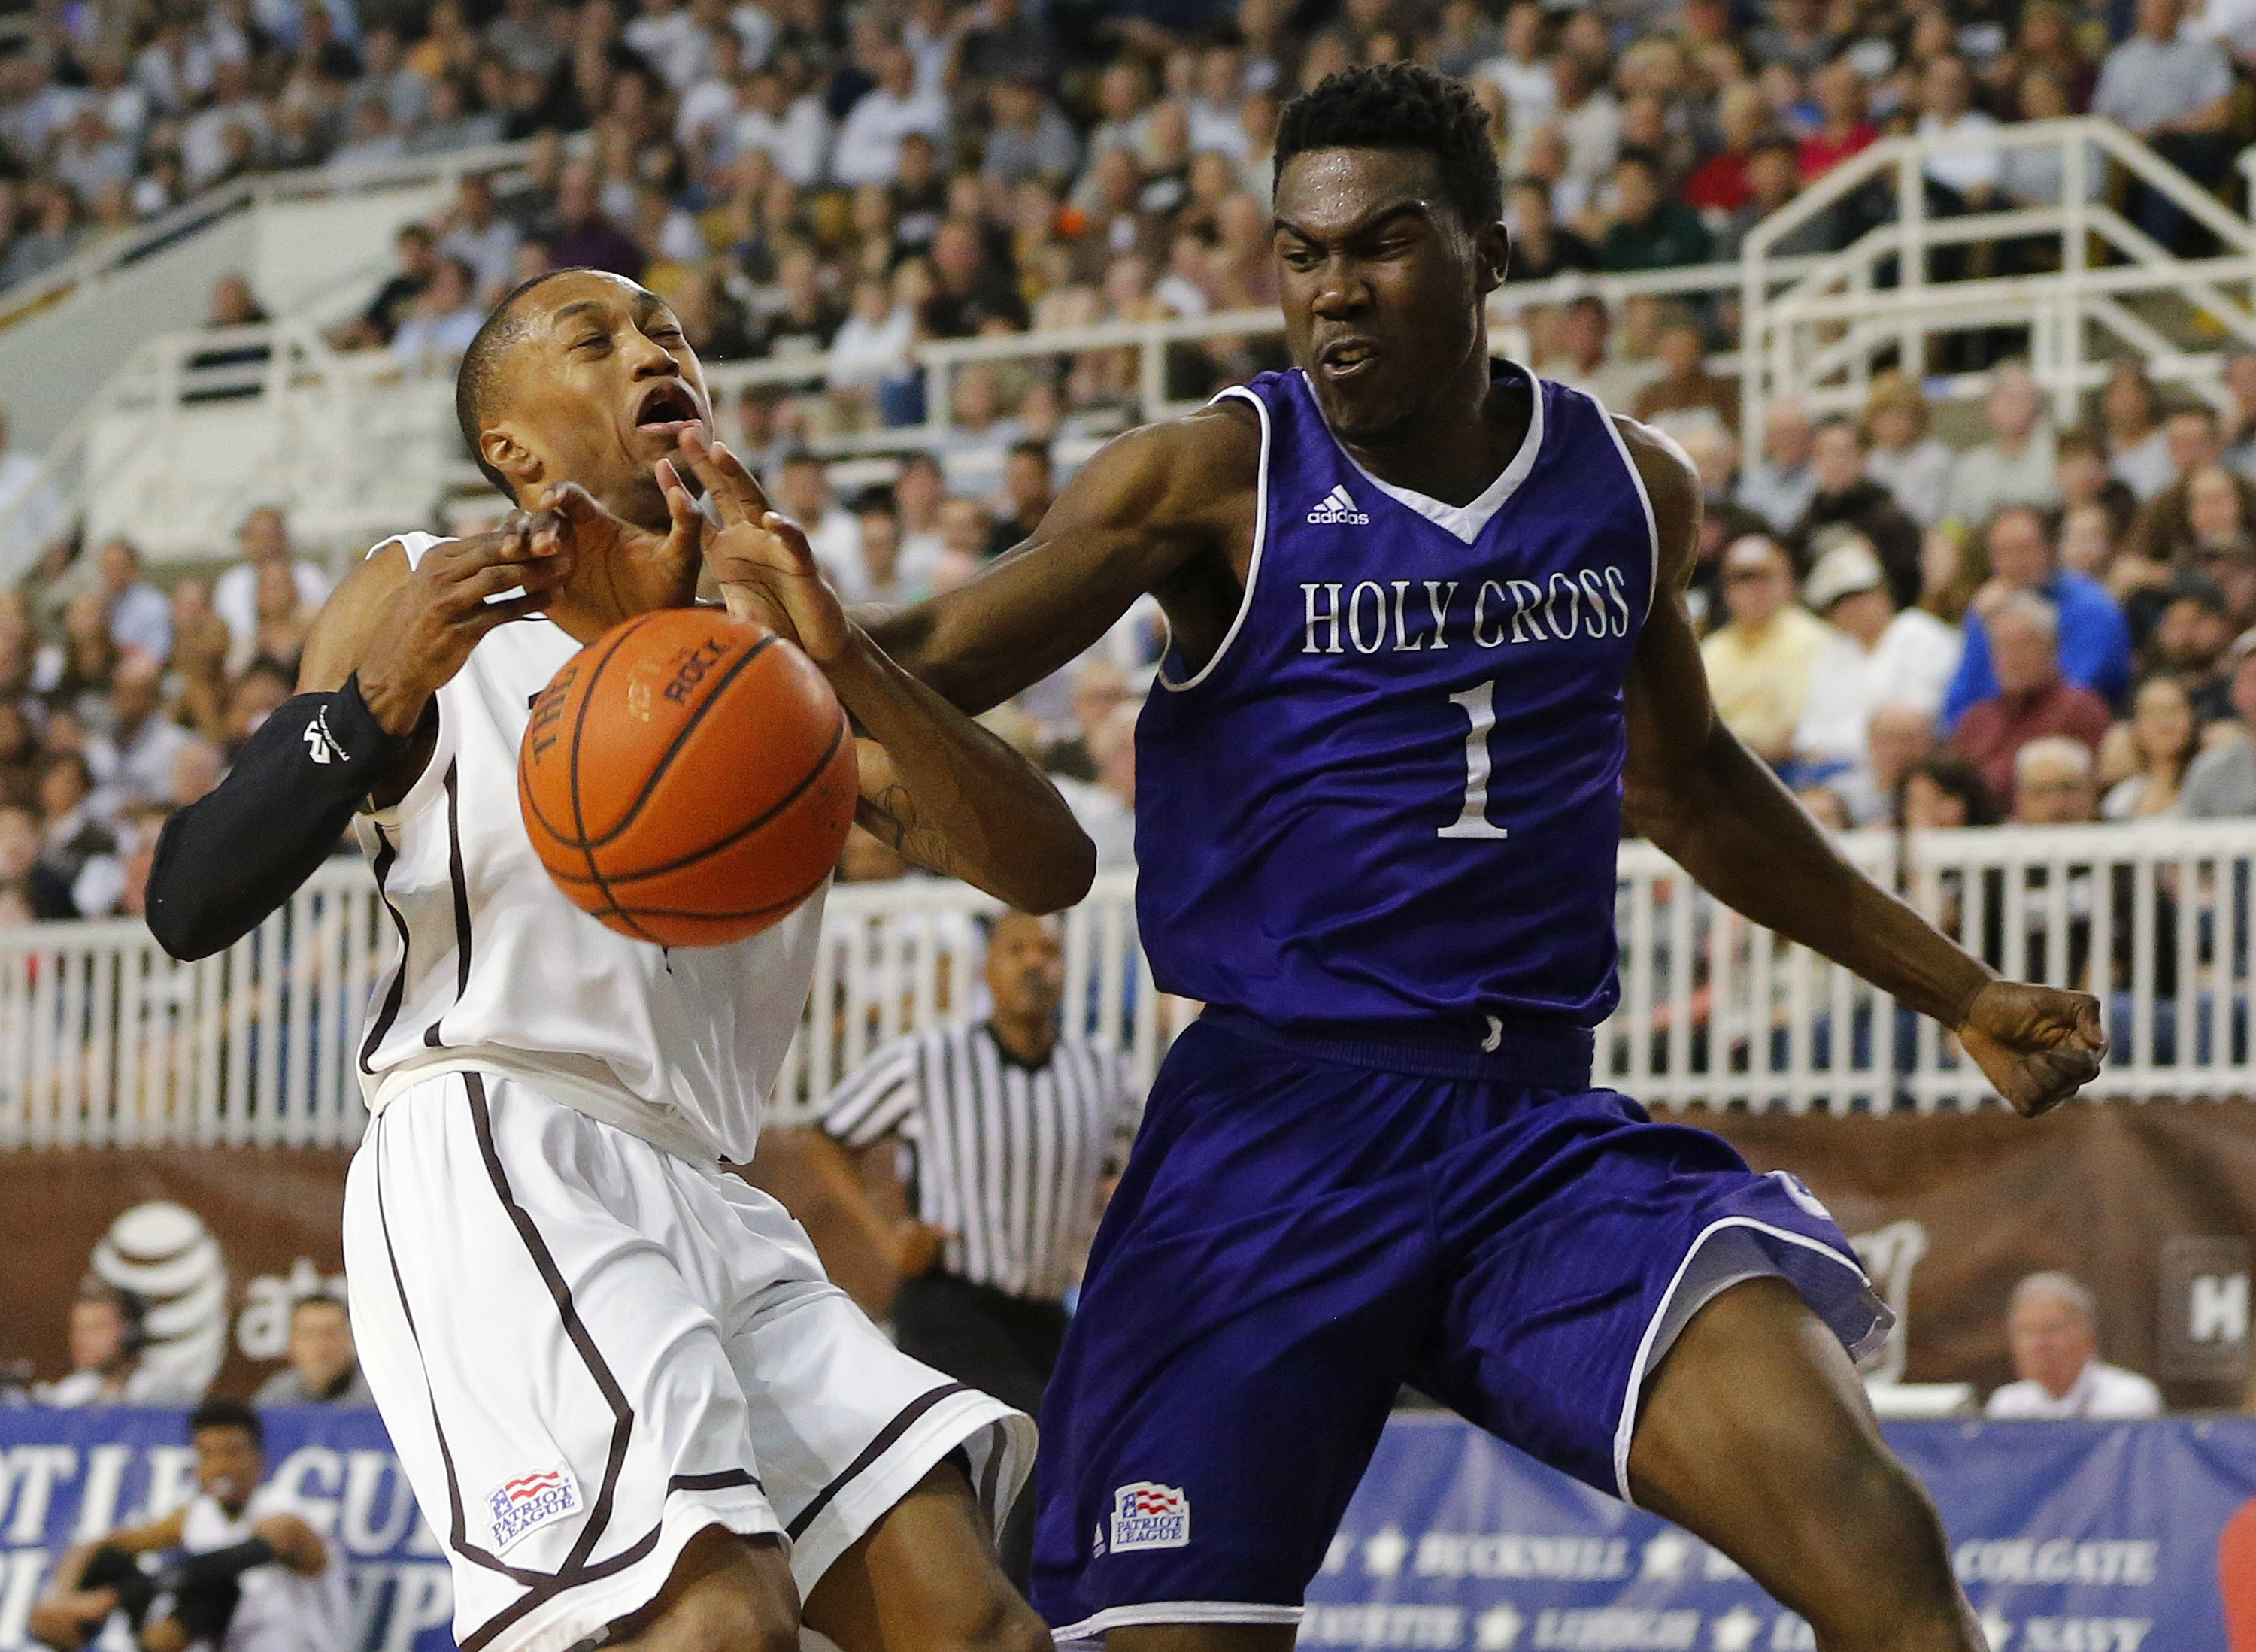 FILE- In this March 9, 2016, file photo, Lehigh guard Kahron Ross, left, has the ball knocked away from him by Holy Cross forward Karl Charles (1) during the first half of the NCAA college basketball Patriot League Championship game at Lehigh in Bethlehem